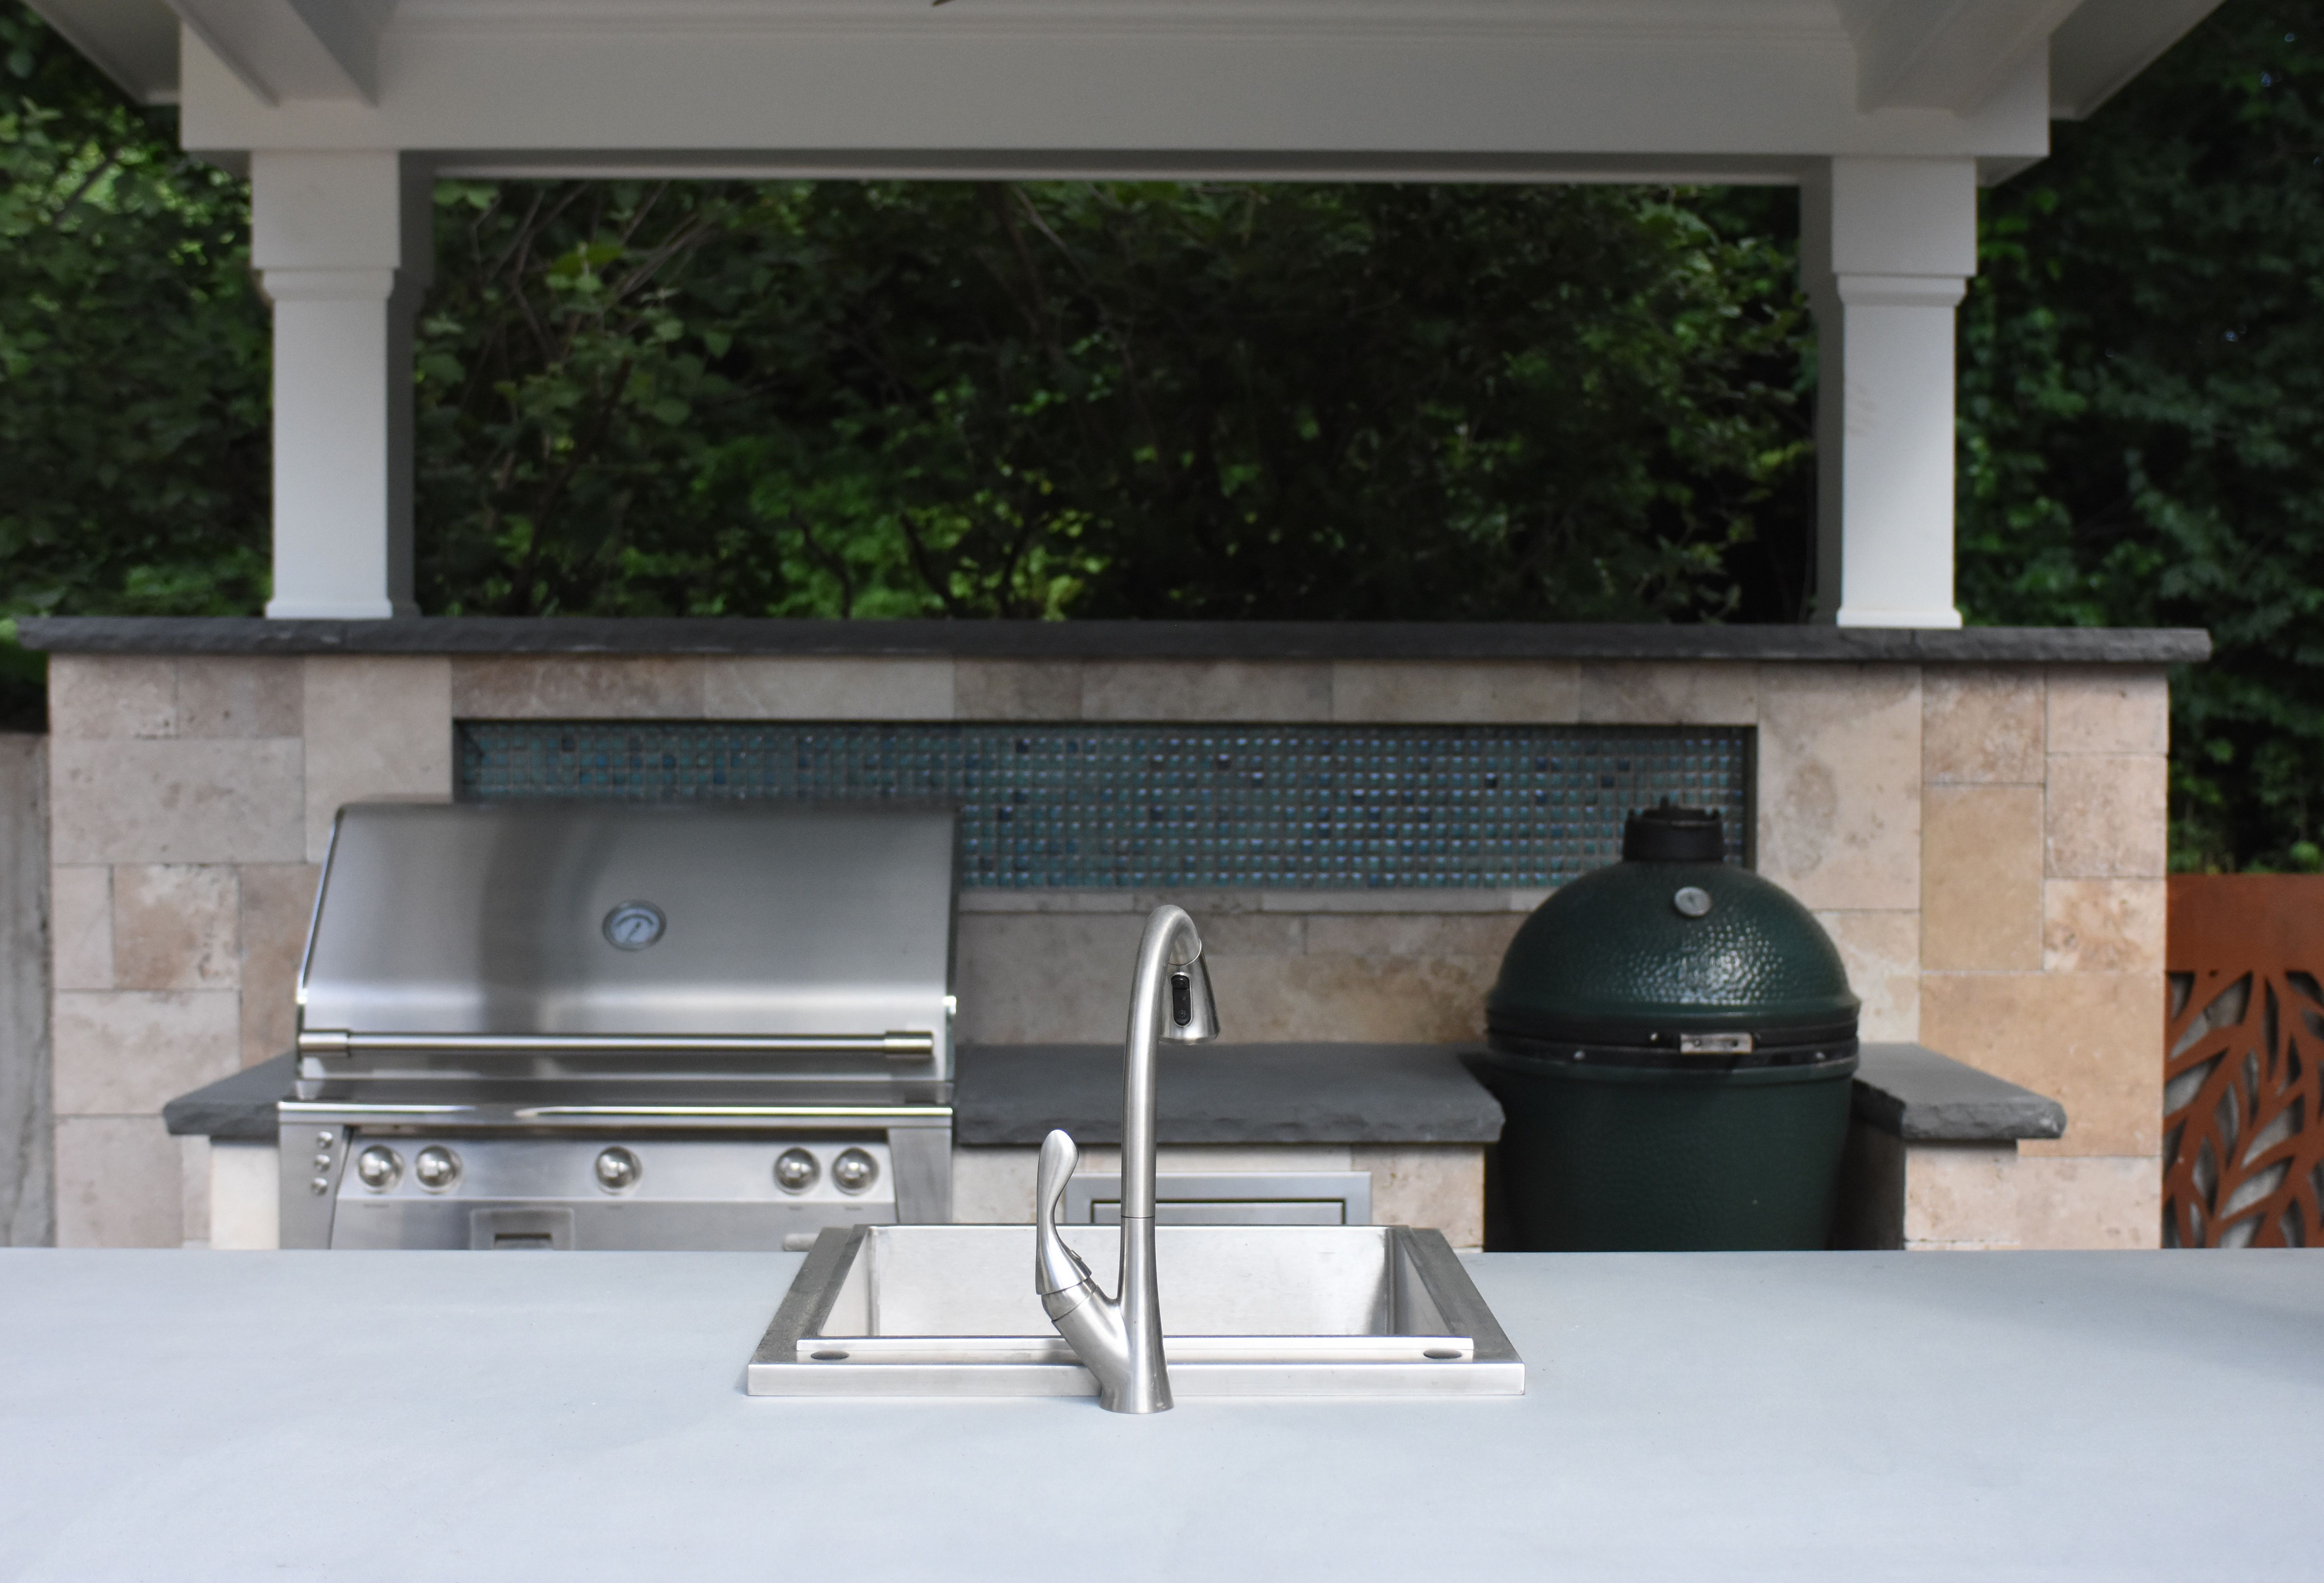 Blue Stone Countertop Outdoor Kitchens Outdoor Kitchens Kitchen Outdoor Kitchen